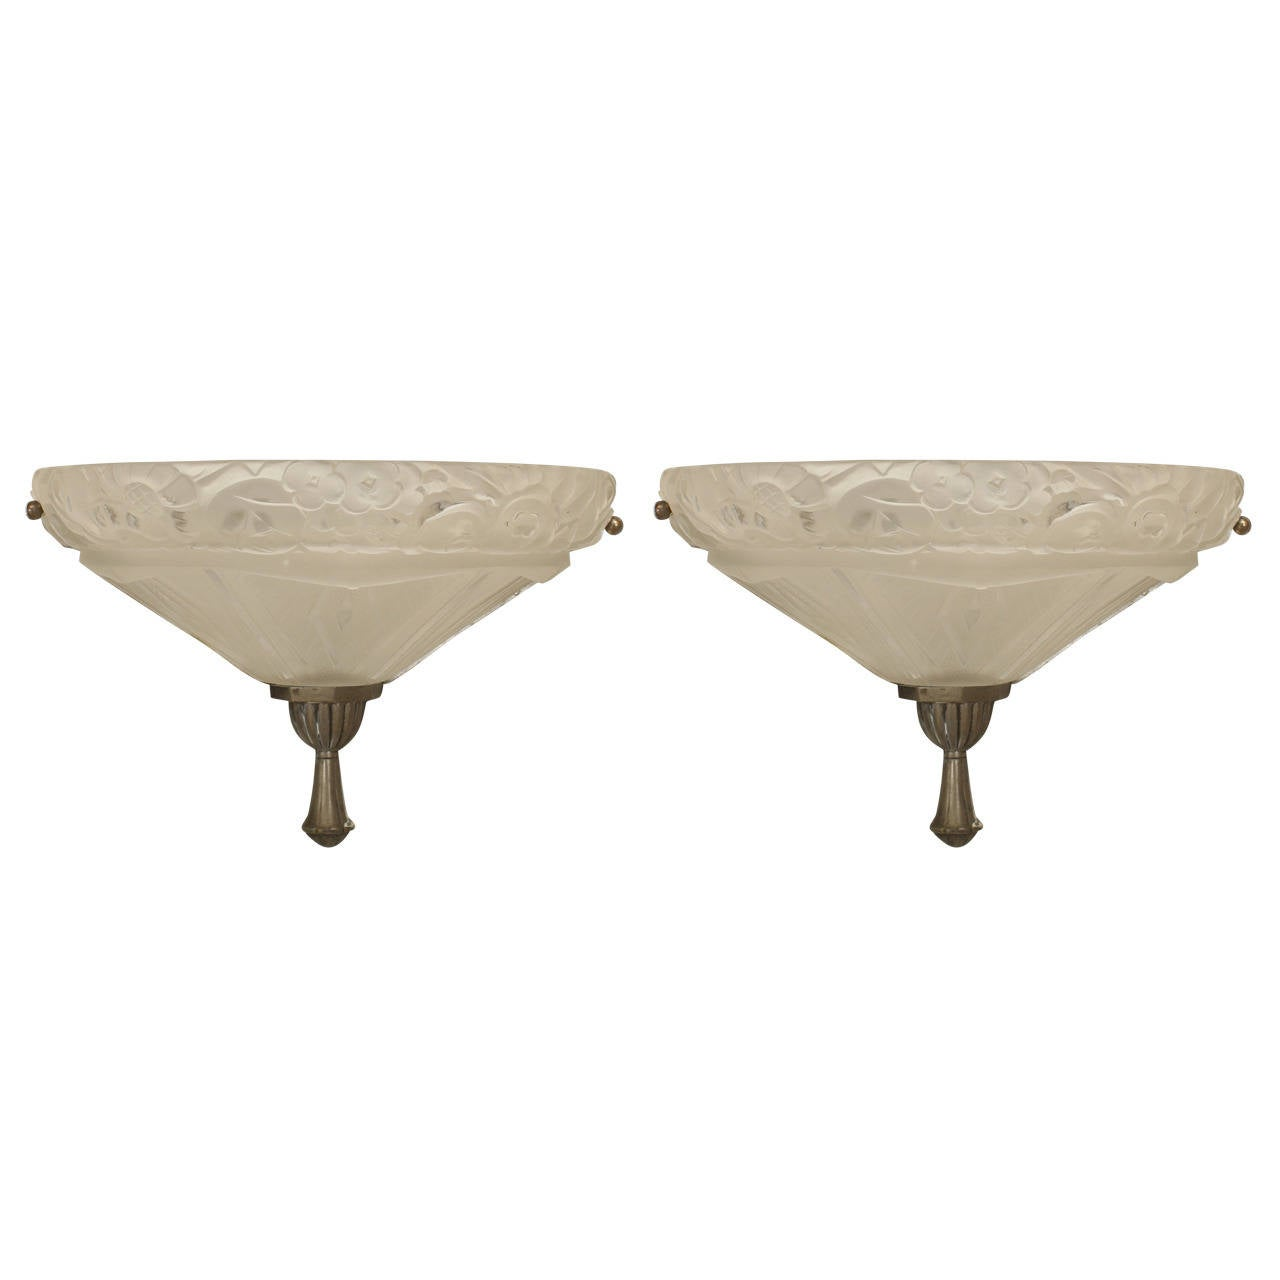 Pair of French Art Deco Molded Frosted Glass Sconces Attributed to Sabino